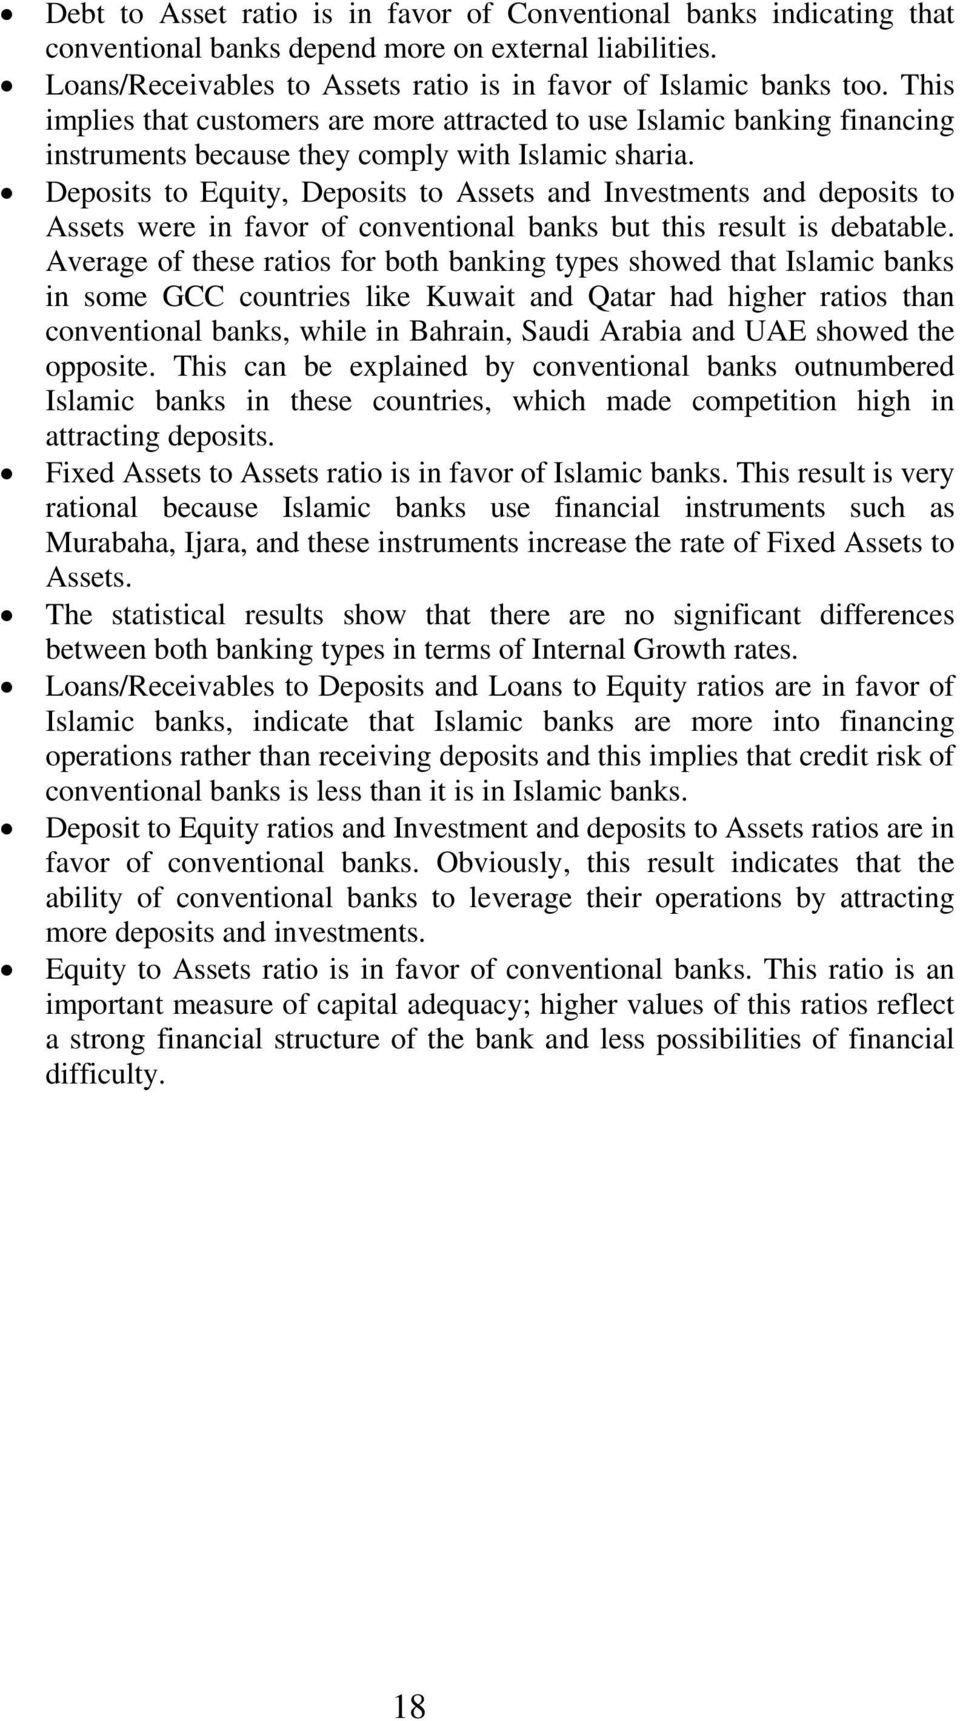 Deposits to Equity, Deposits to Assets and Investments and deposits to Assets were in favor of conventional banks but this result is debatable.